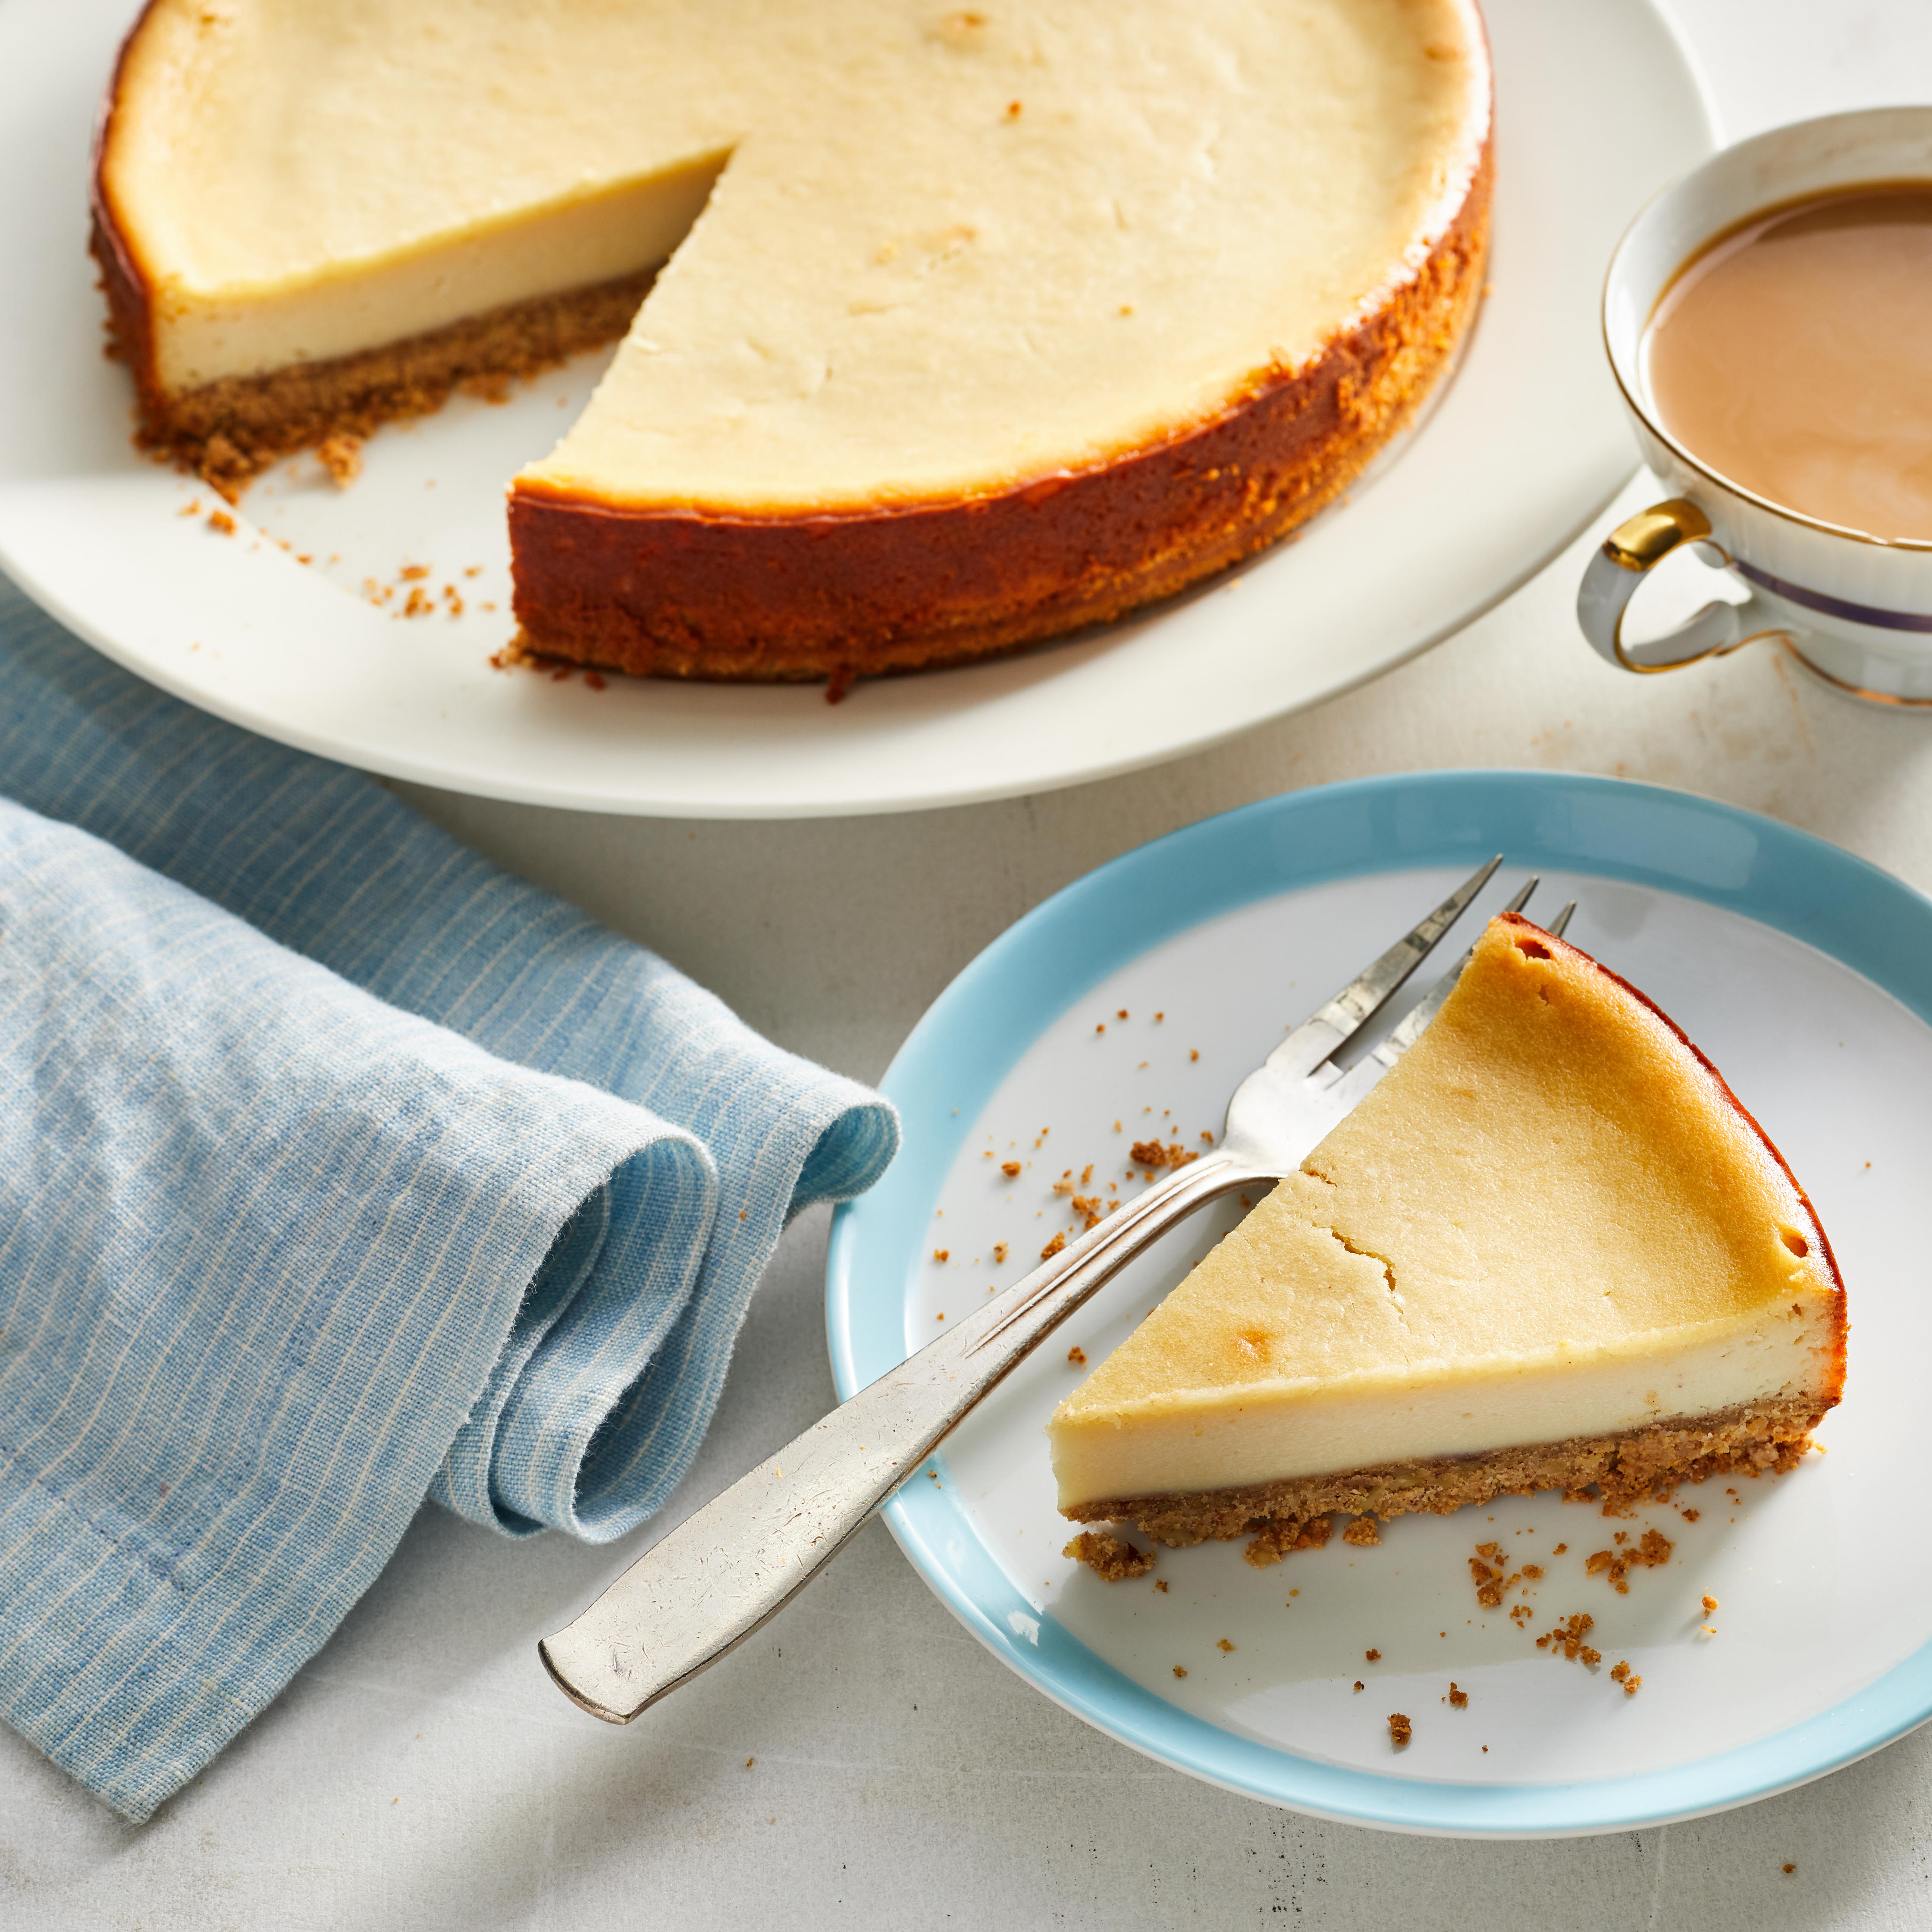 This luscious vegan cheesecake nixes the dairy in favor of a filling made with coconut cream, tofu and cashews or macadamia nuts instead of the traditional eggs and cream. Coconut oil and nuts make for a rich-tasting and crunchy crust, so nobody will miss the butter.